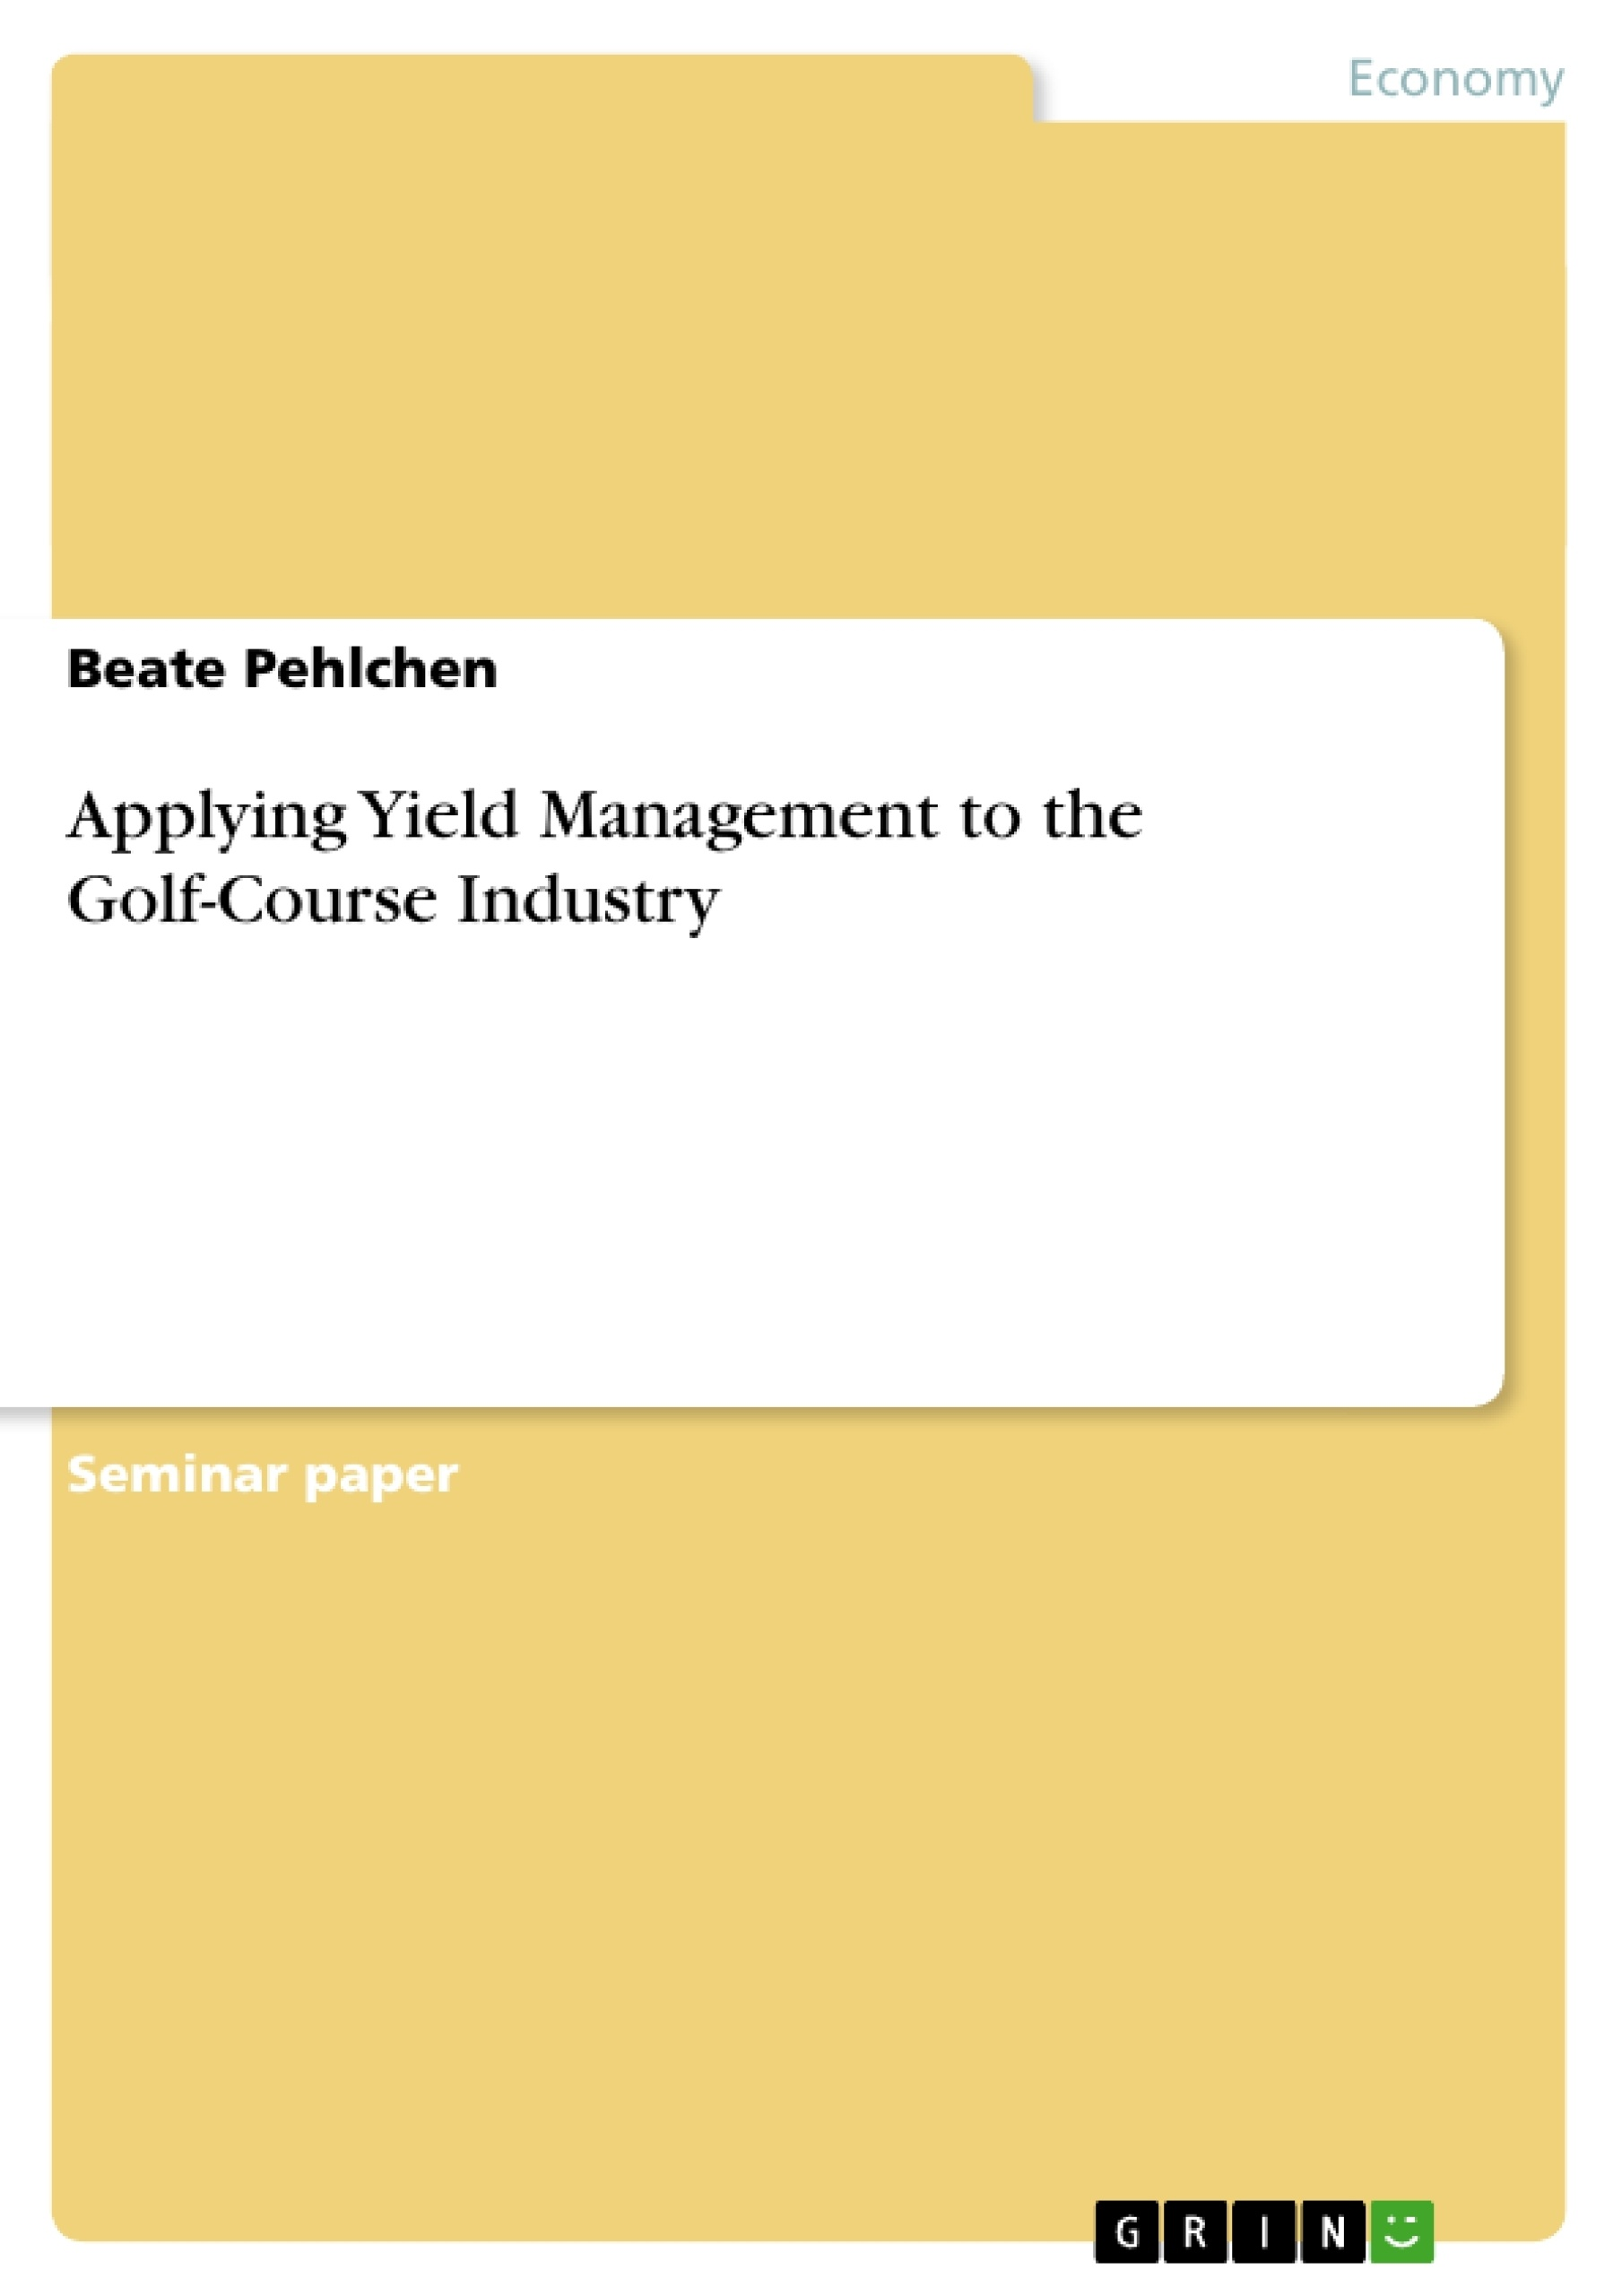 Title: Applying Yield Management to the Golf-Course Industry